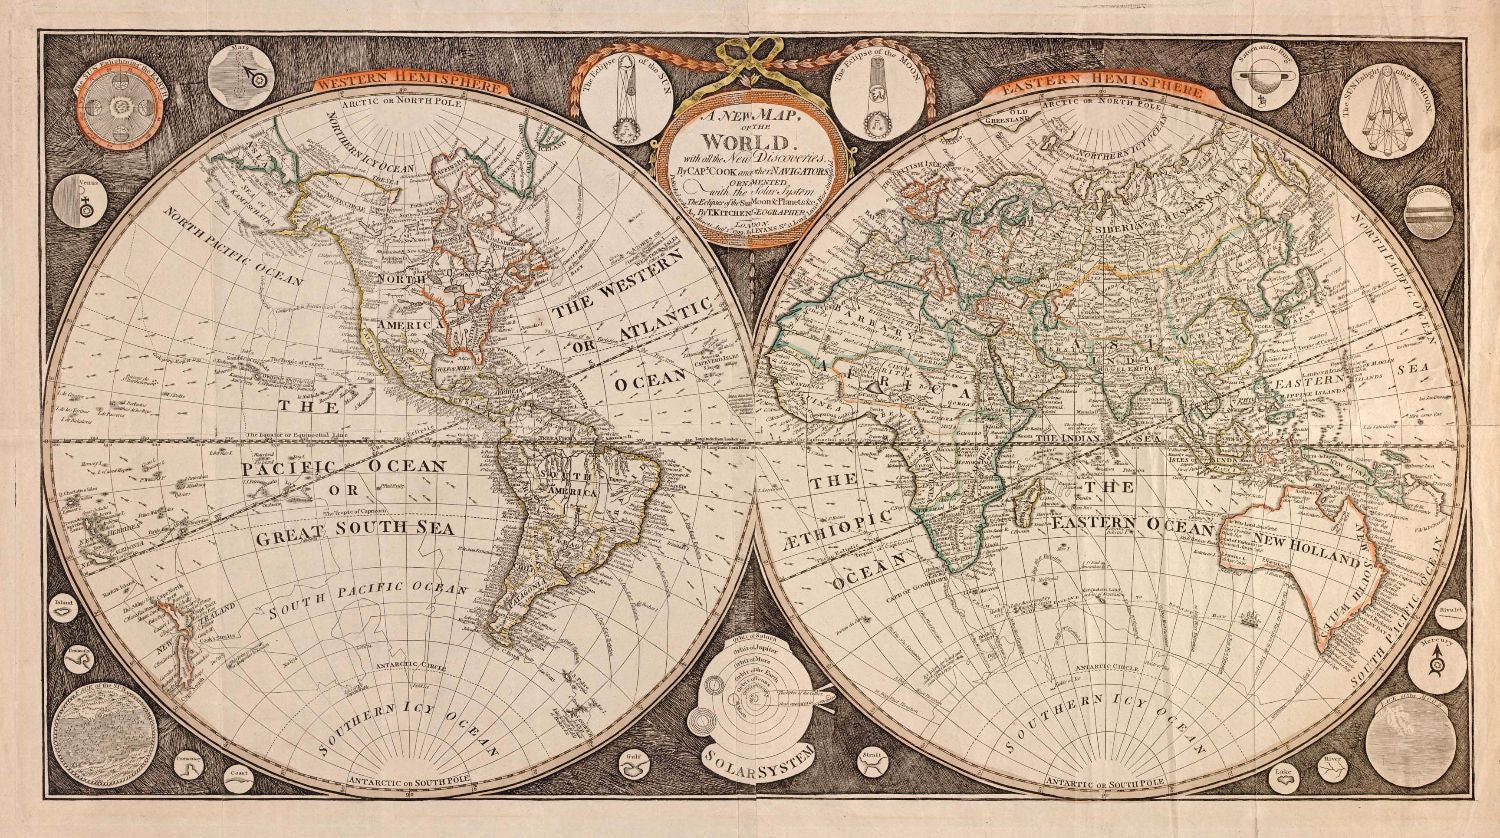 Decorative vintage world map a new map of the world i evans decorative vintage world map a new map of the world i evans gumiabroncs Image collections